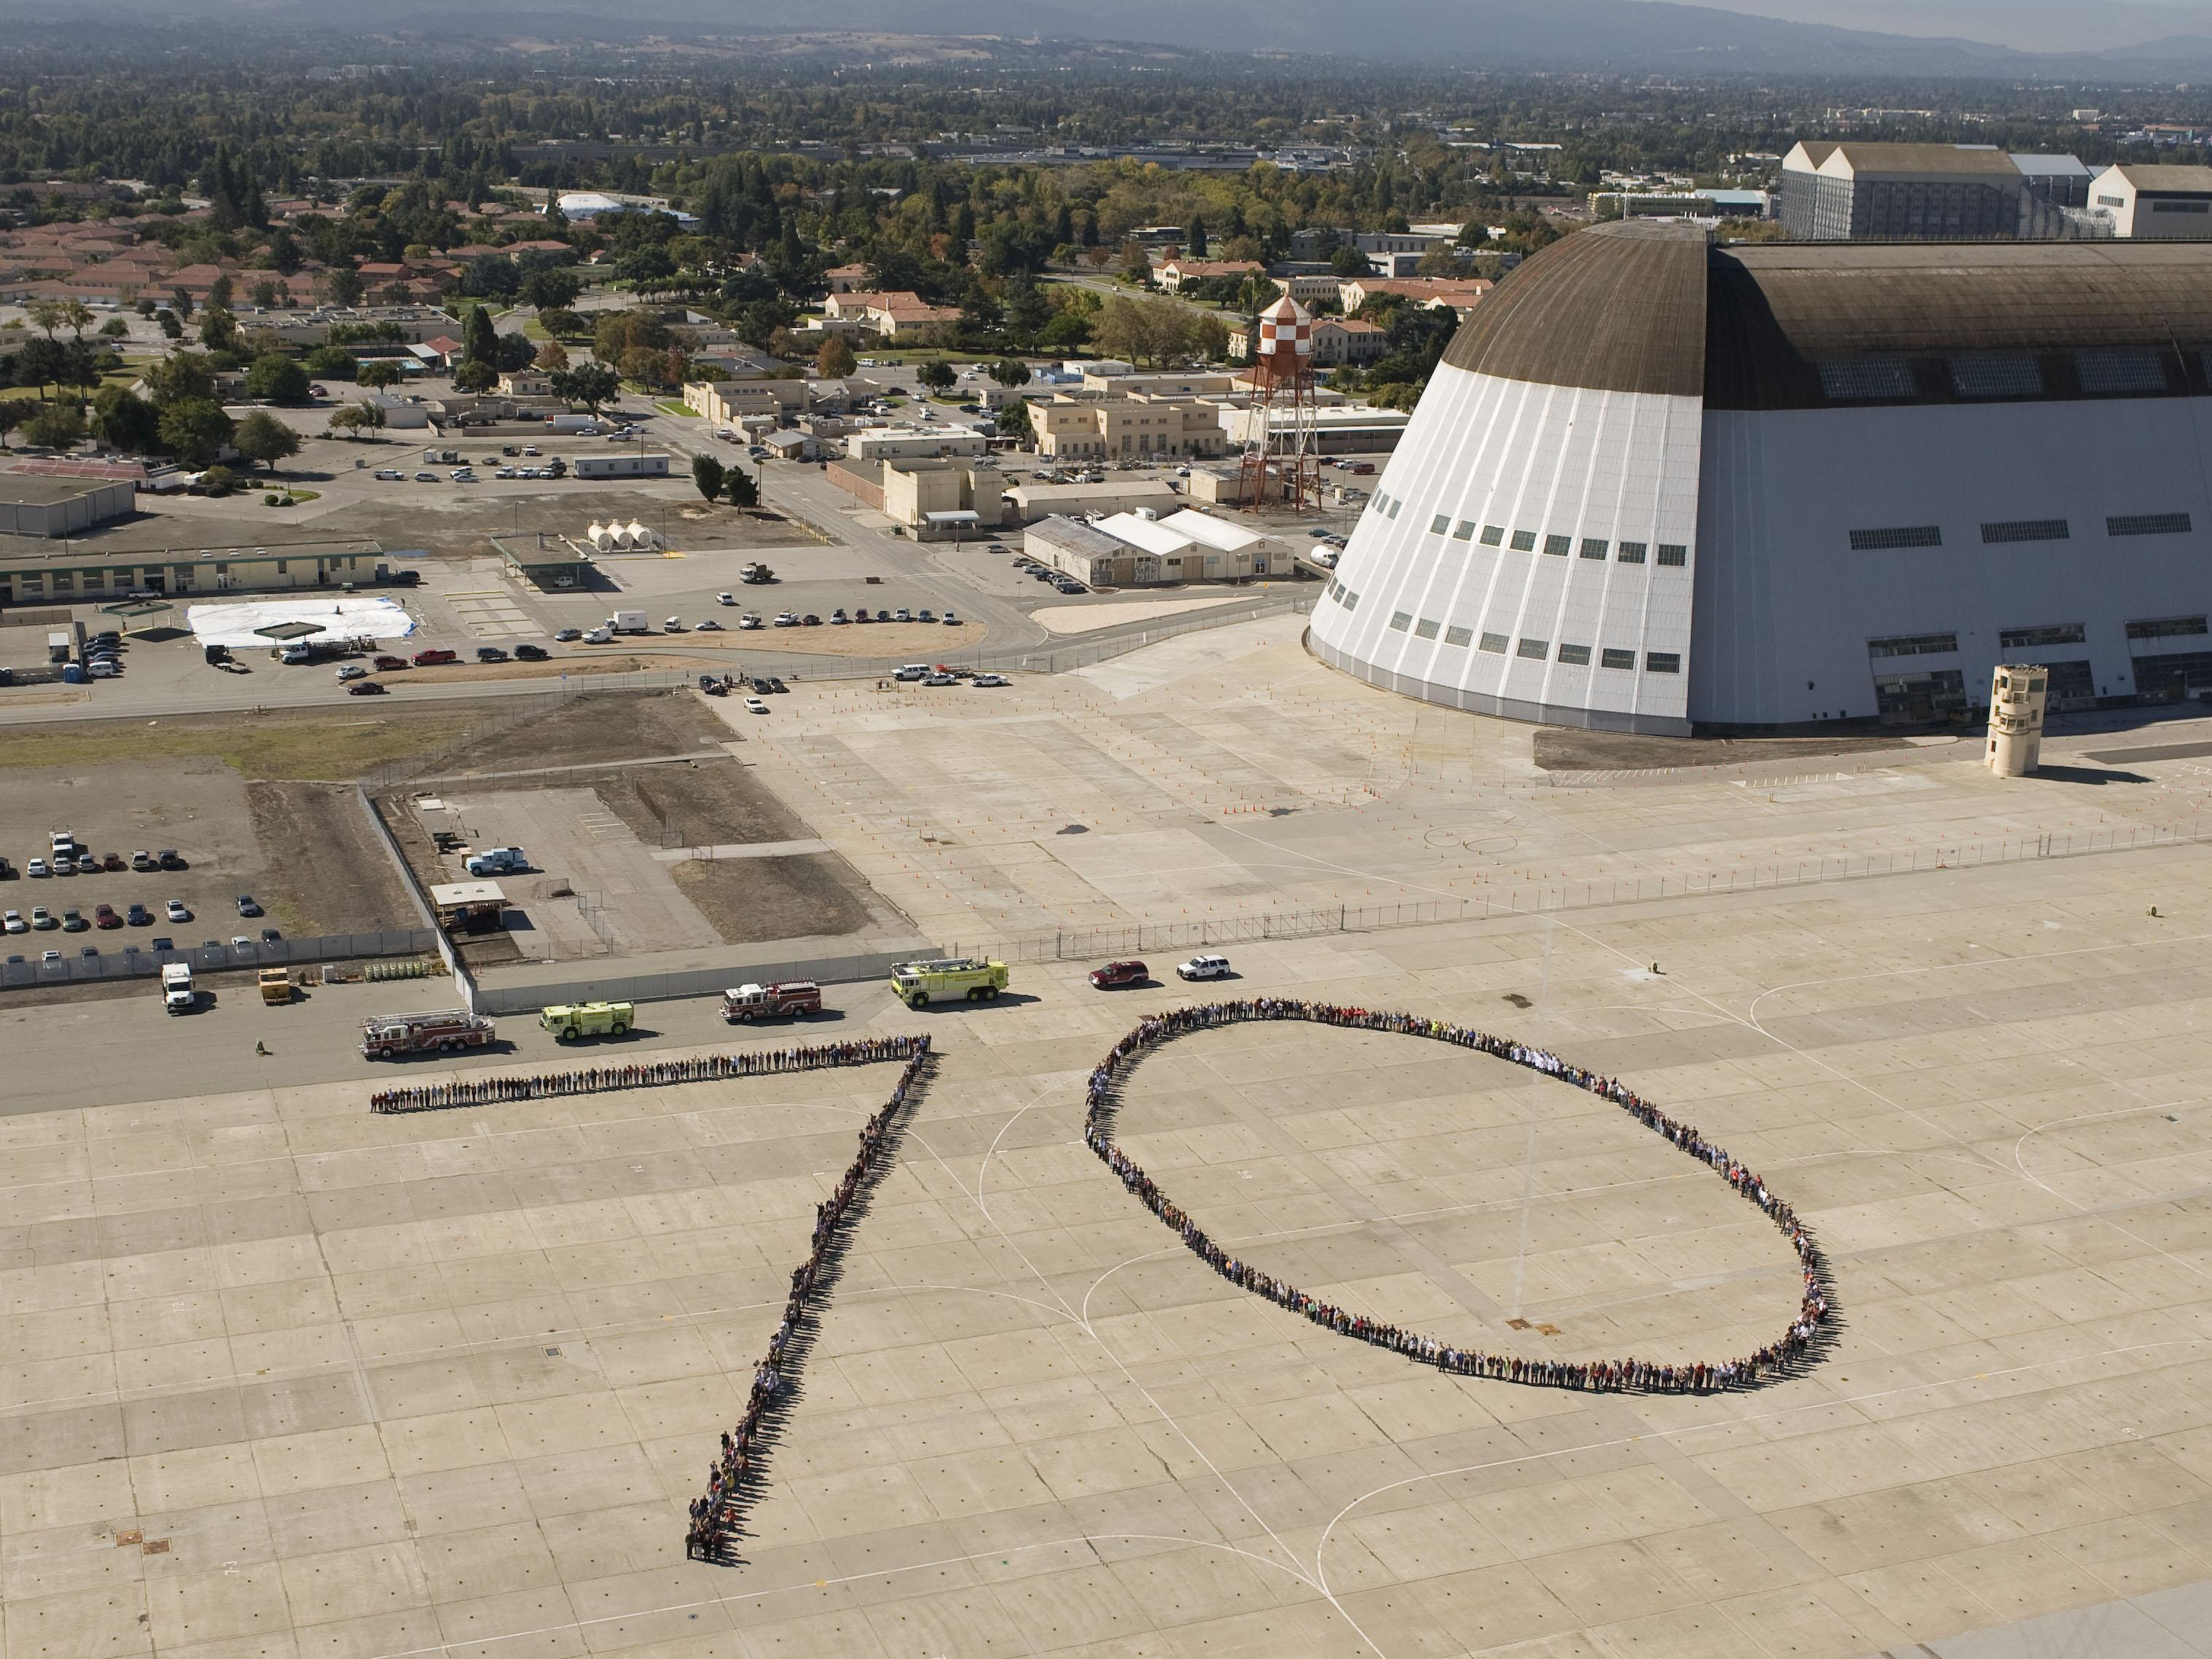 NASA's Ames Research Center employees formed a